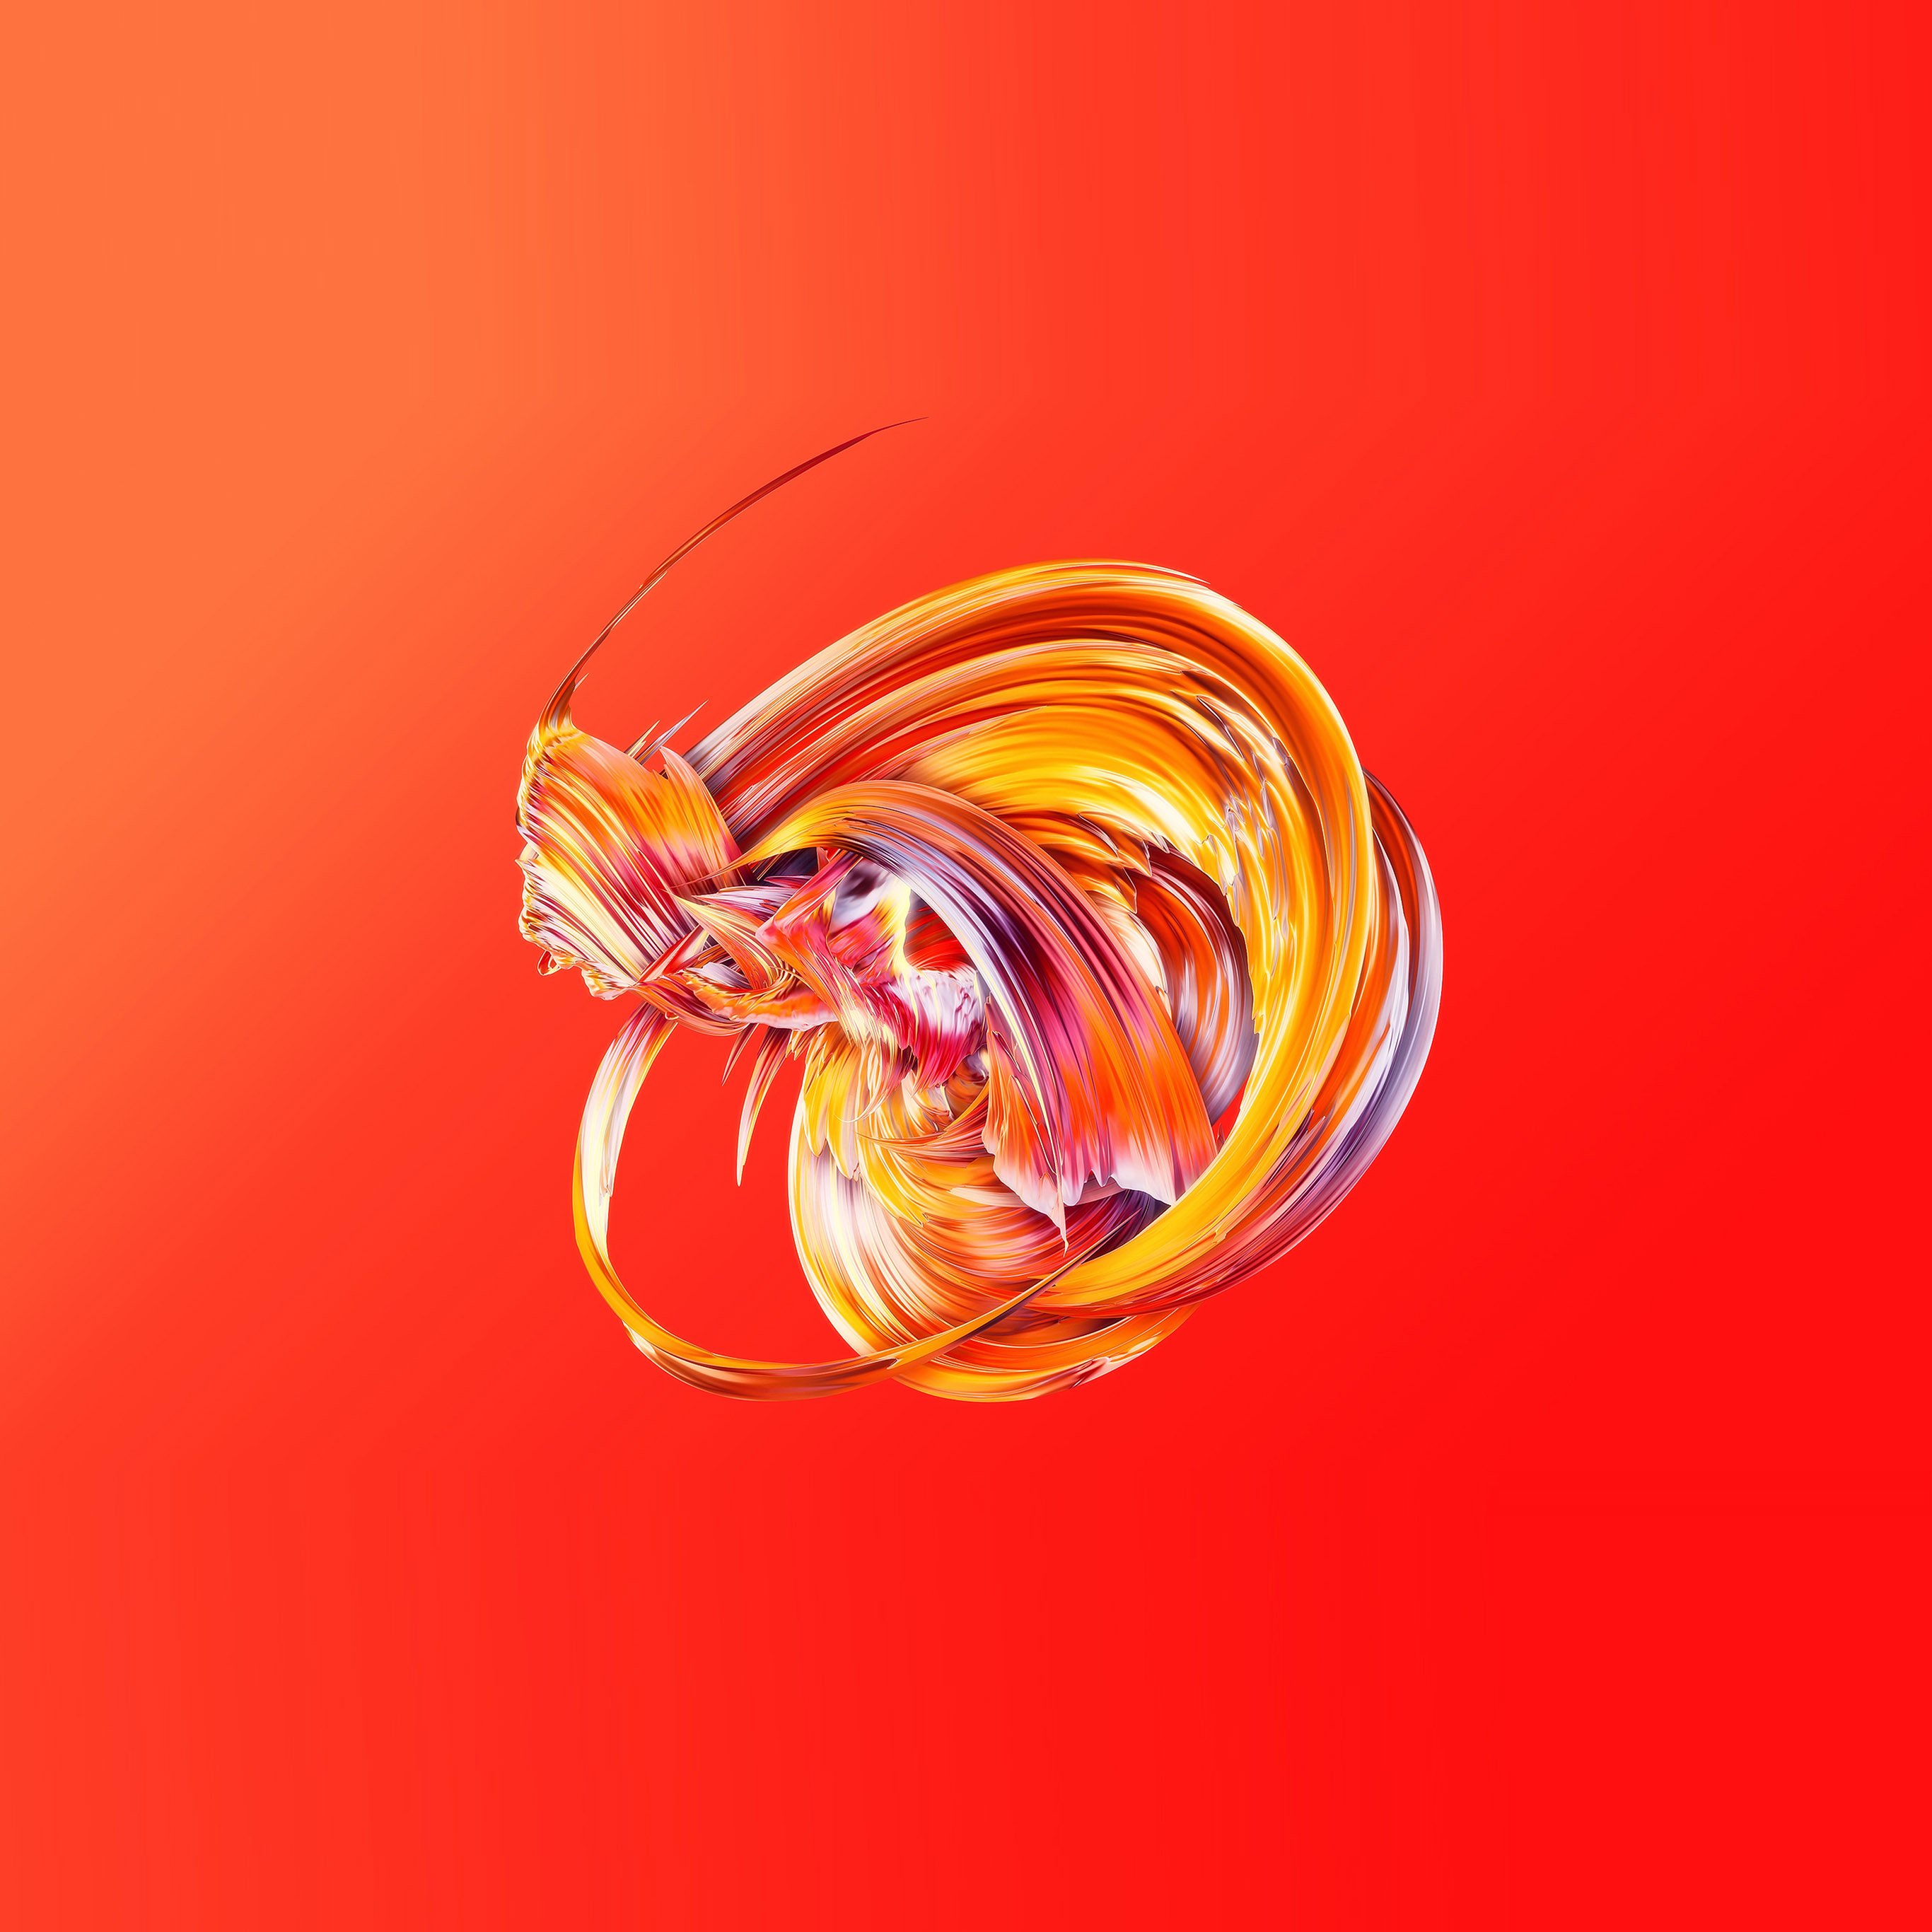 Vw20-orange-art-circle-red-abstract-pattern-background